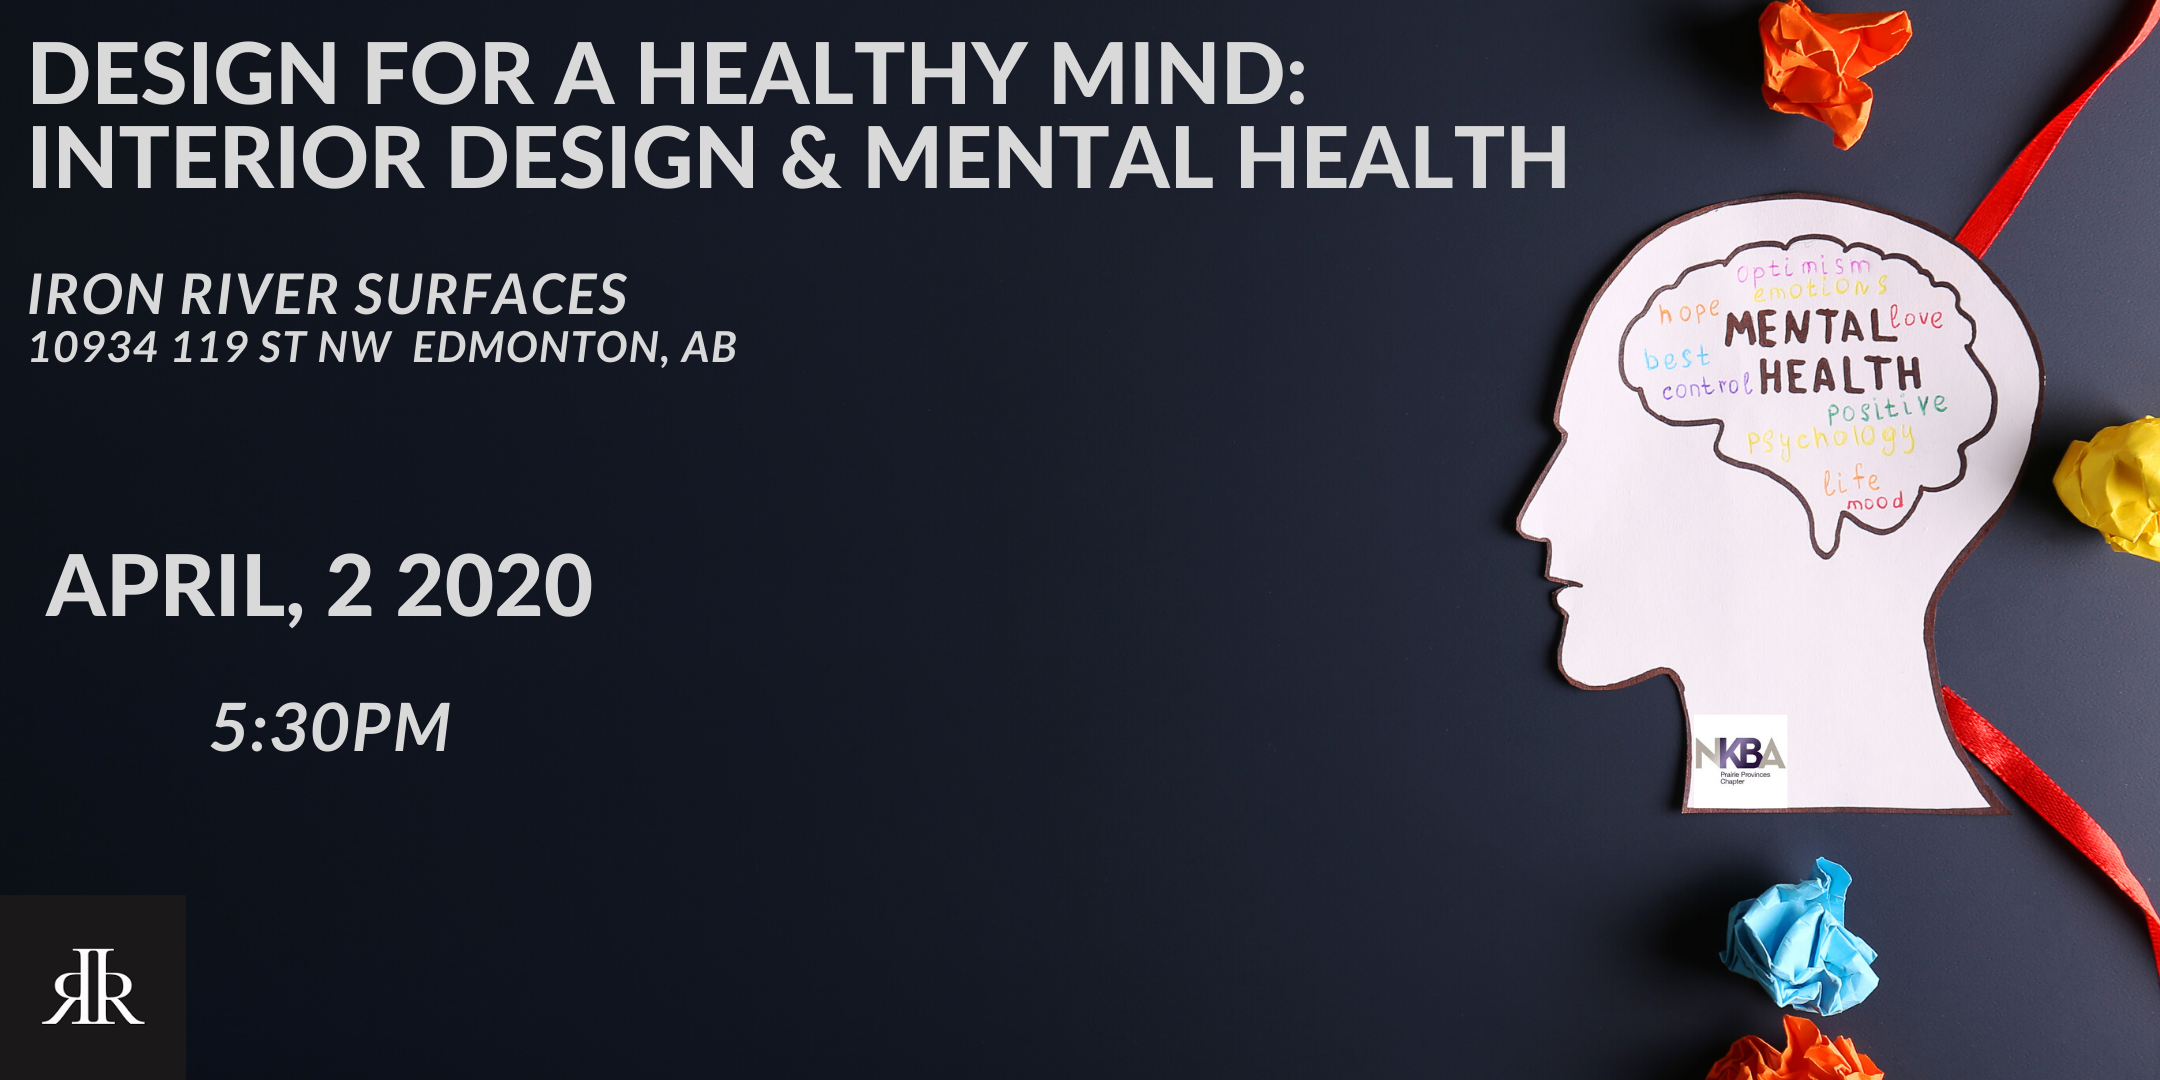 DESIGN FOR A HEALTHY MIND; INTERIOR DESIGN AND MENTAL HEALTH